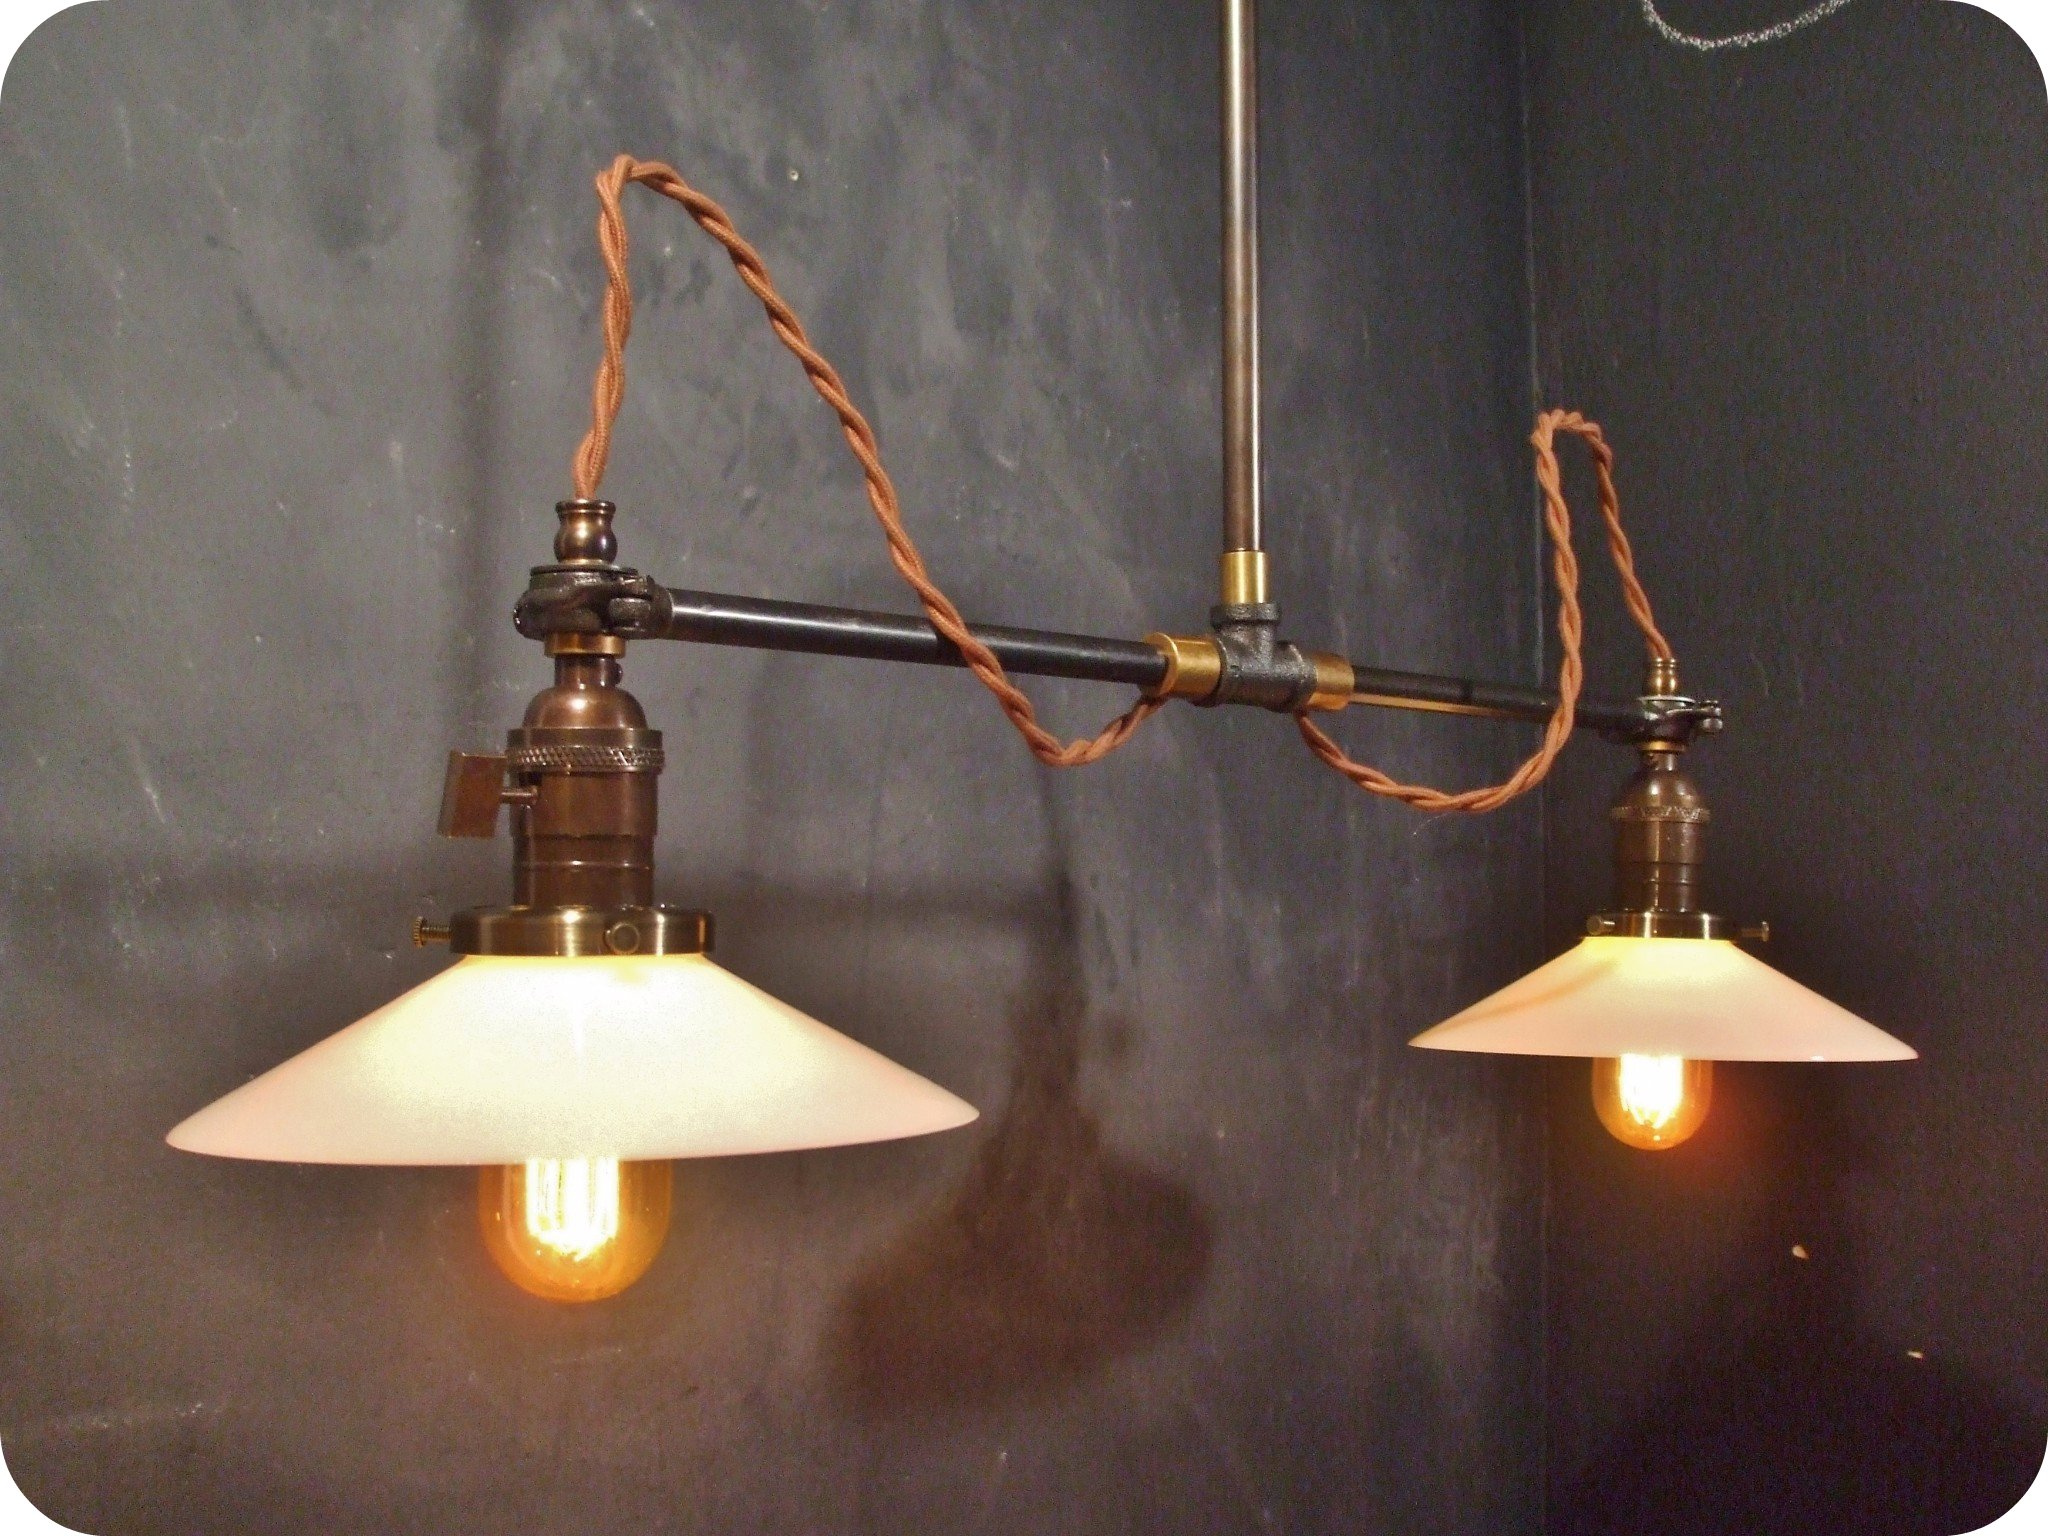 Illuminate Your Kitchens The Royal Way With Vintage Kitchen Ceiling - Flat kitchen ceiling lights